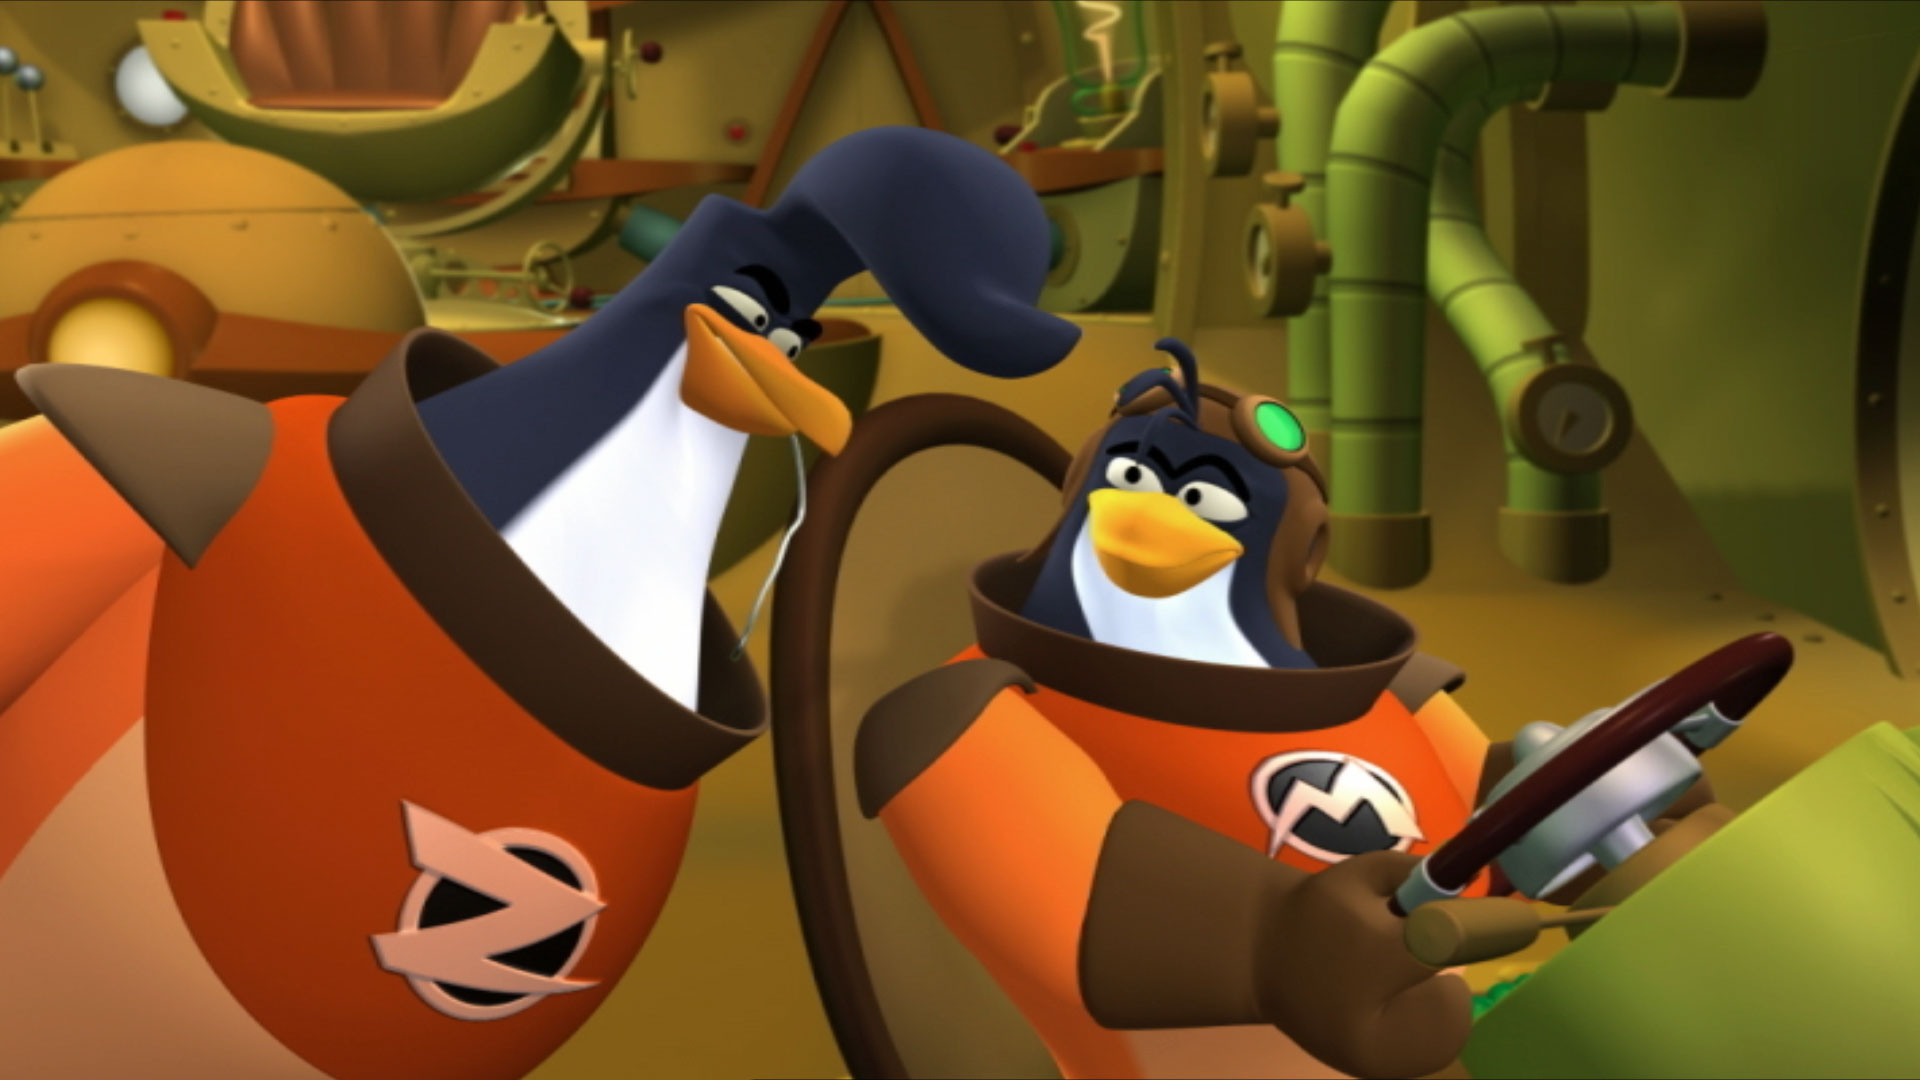 321 penguins ep 01 preview image